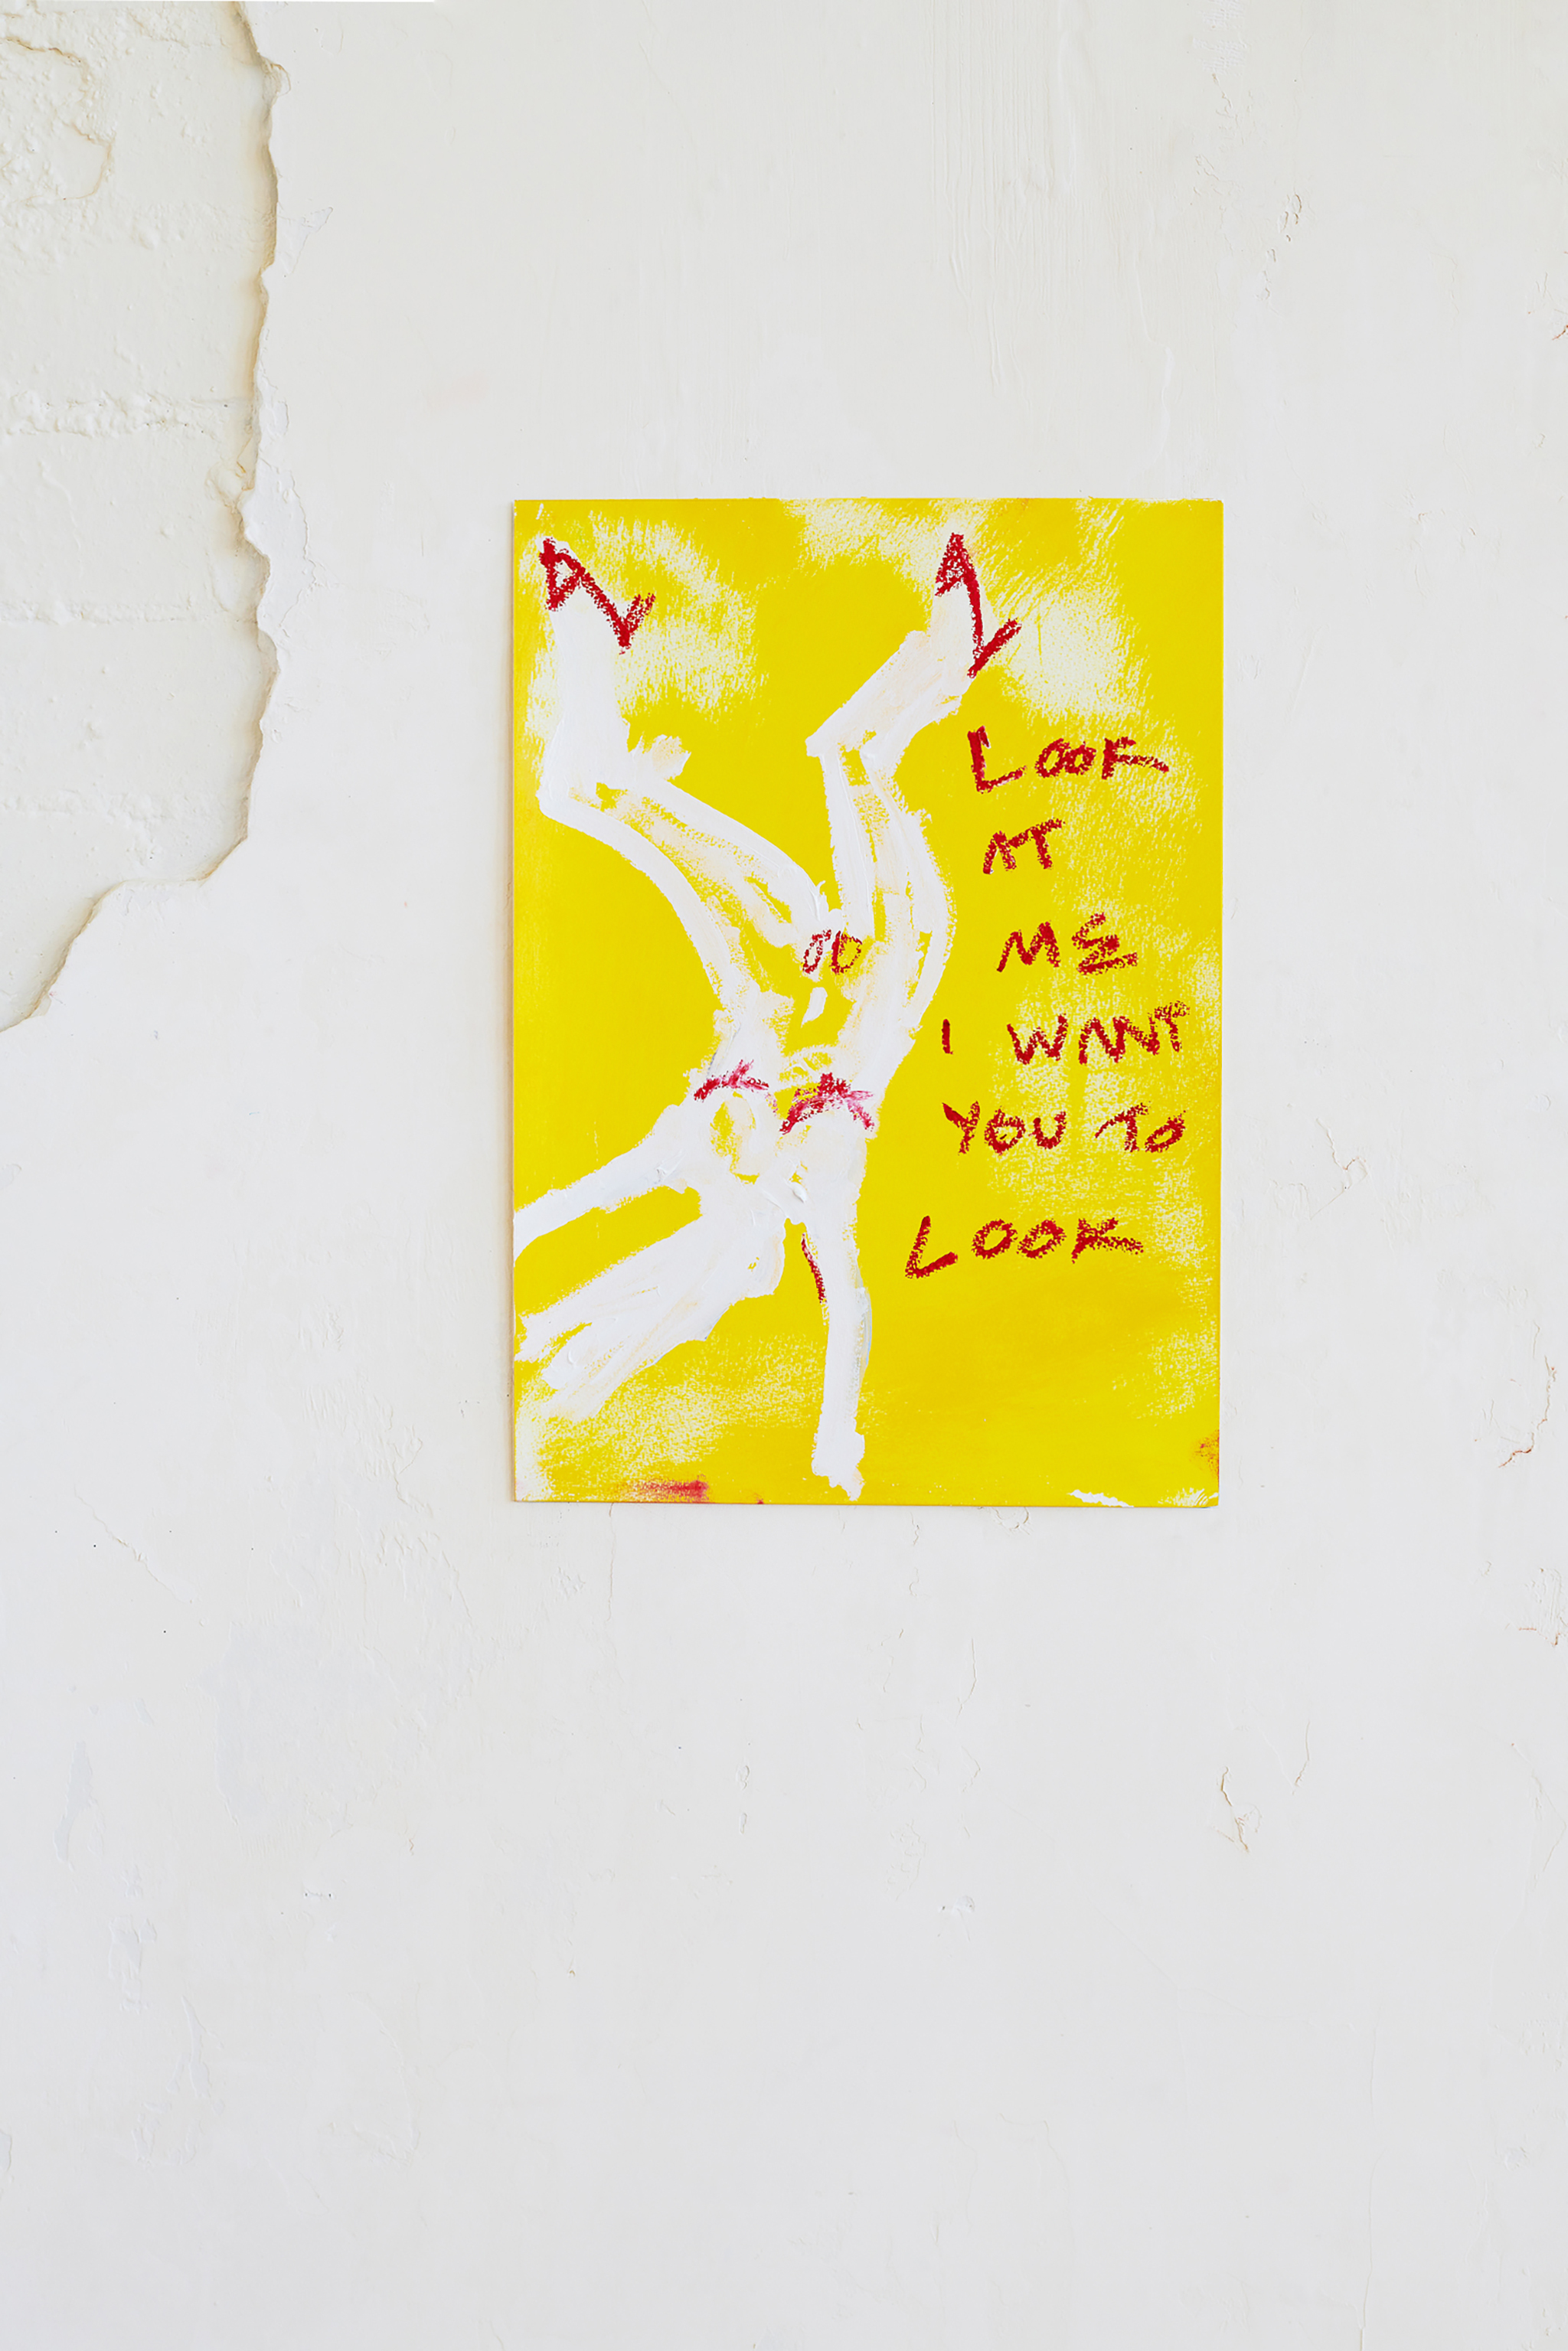 Marisa Mu At the above I Love It When You Give Me Attention 29 7cm x 42cm acrylic and oil pastels on coldpress paper